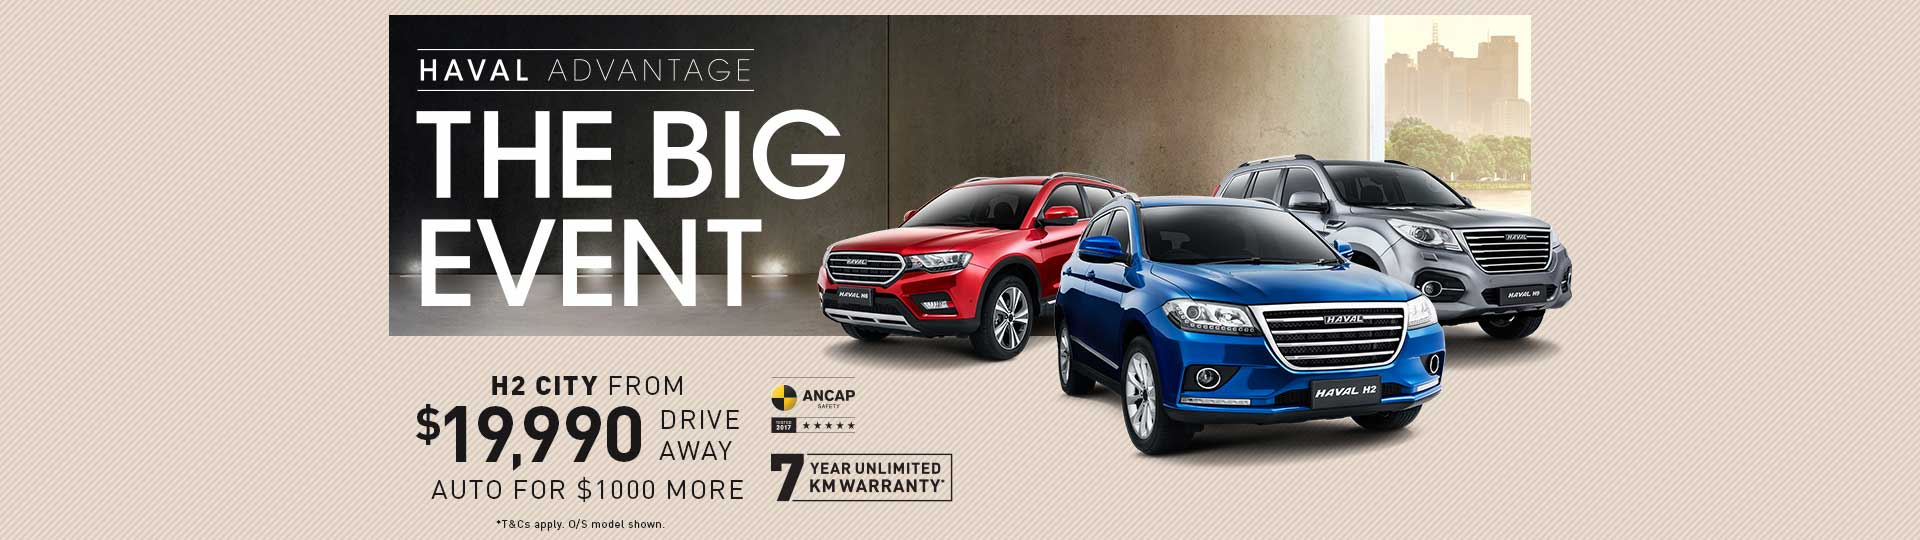 HAVAL - The Big Event